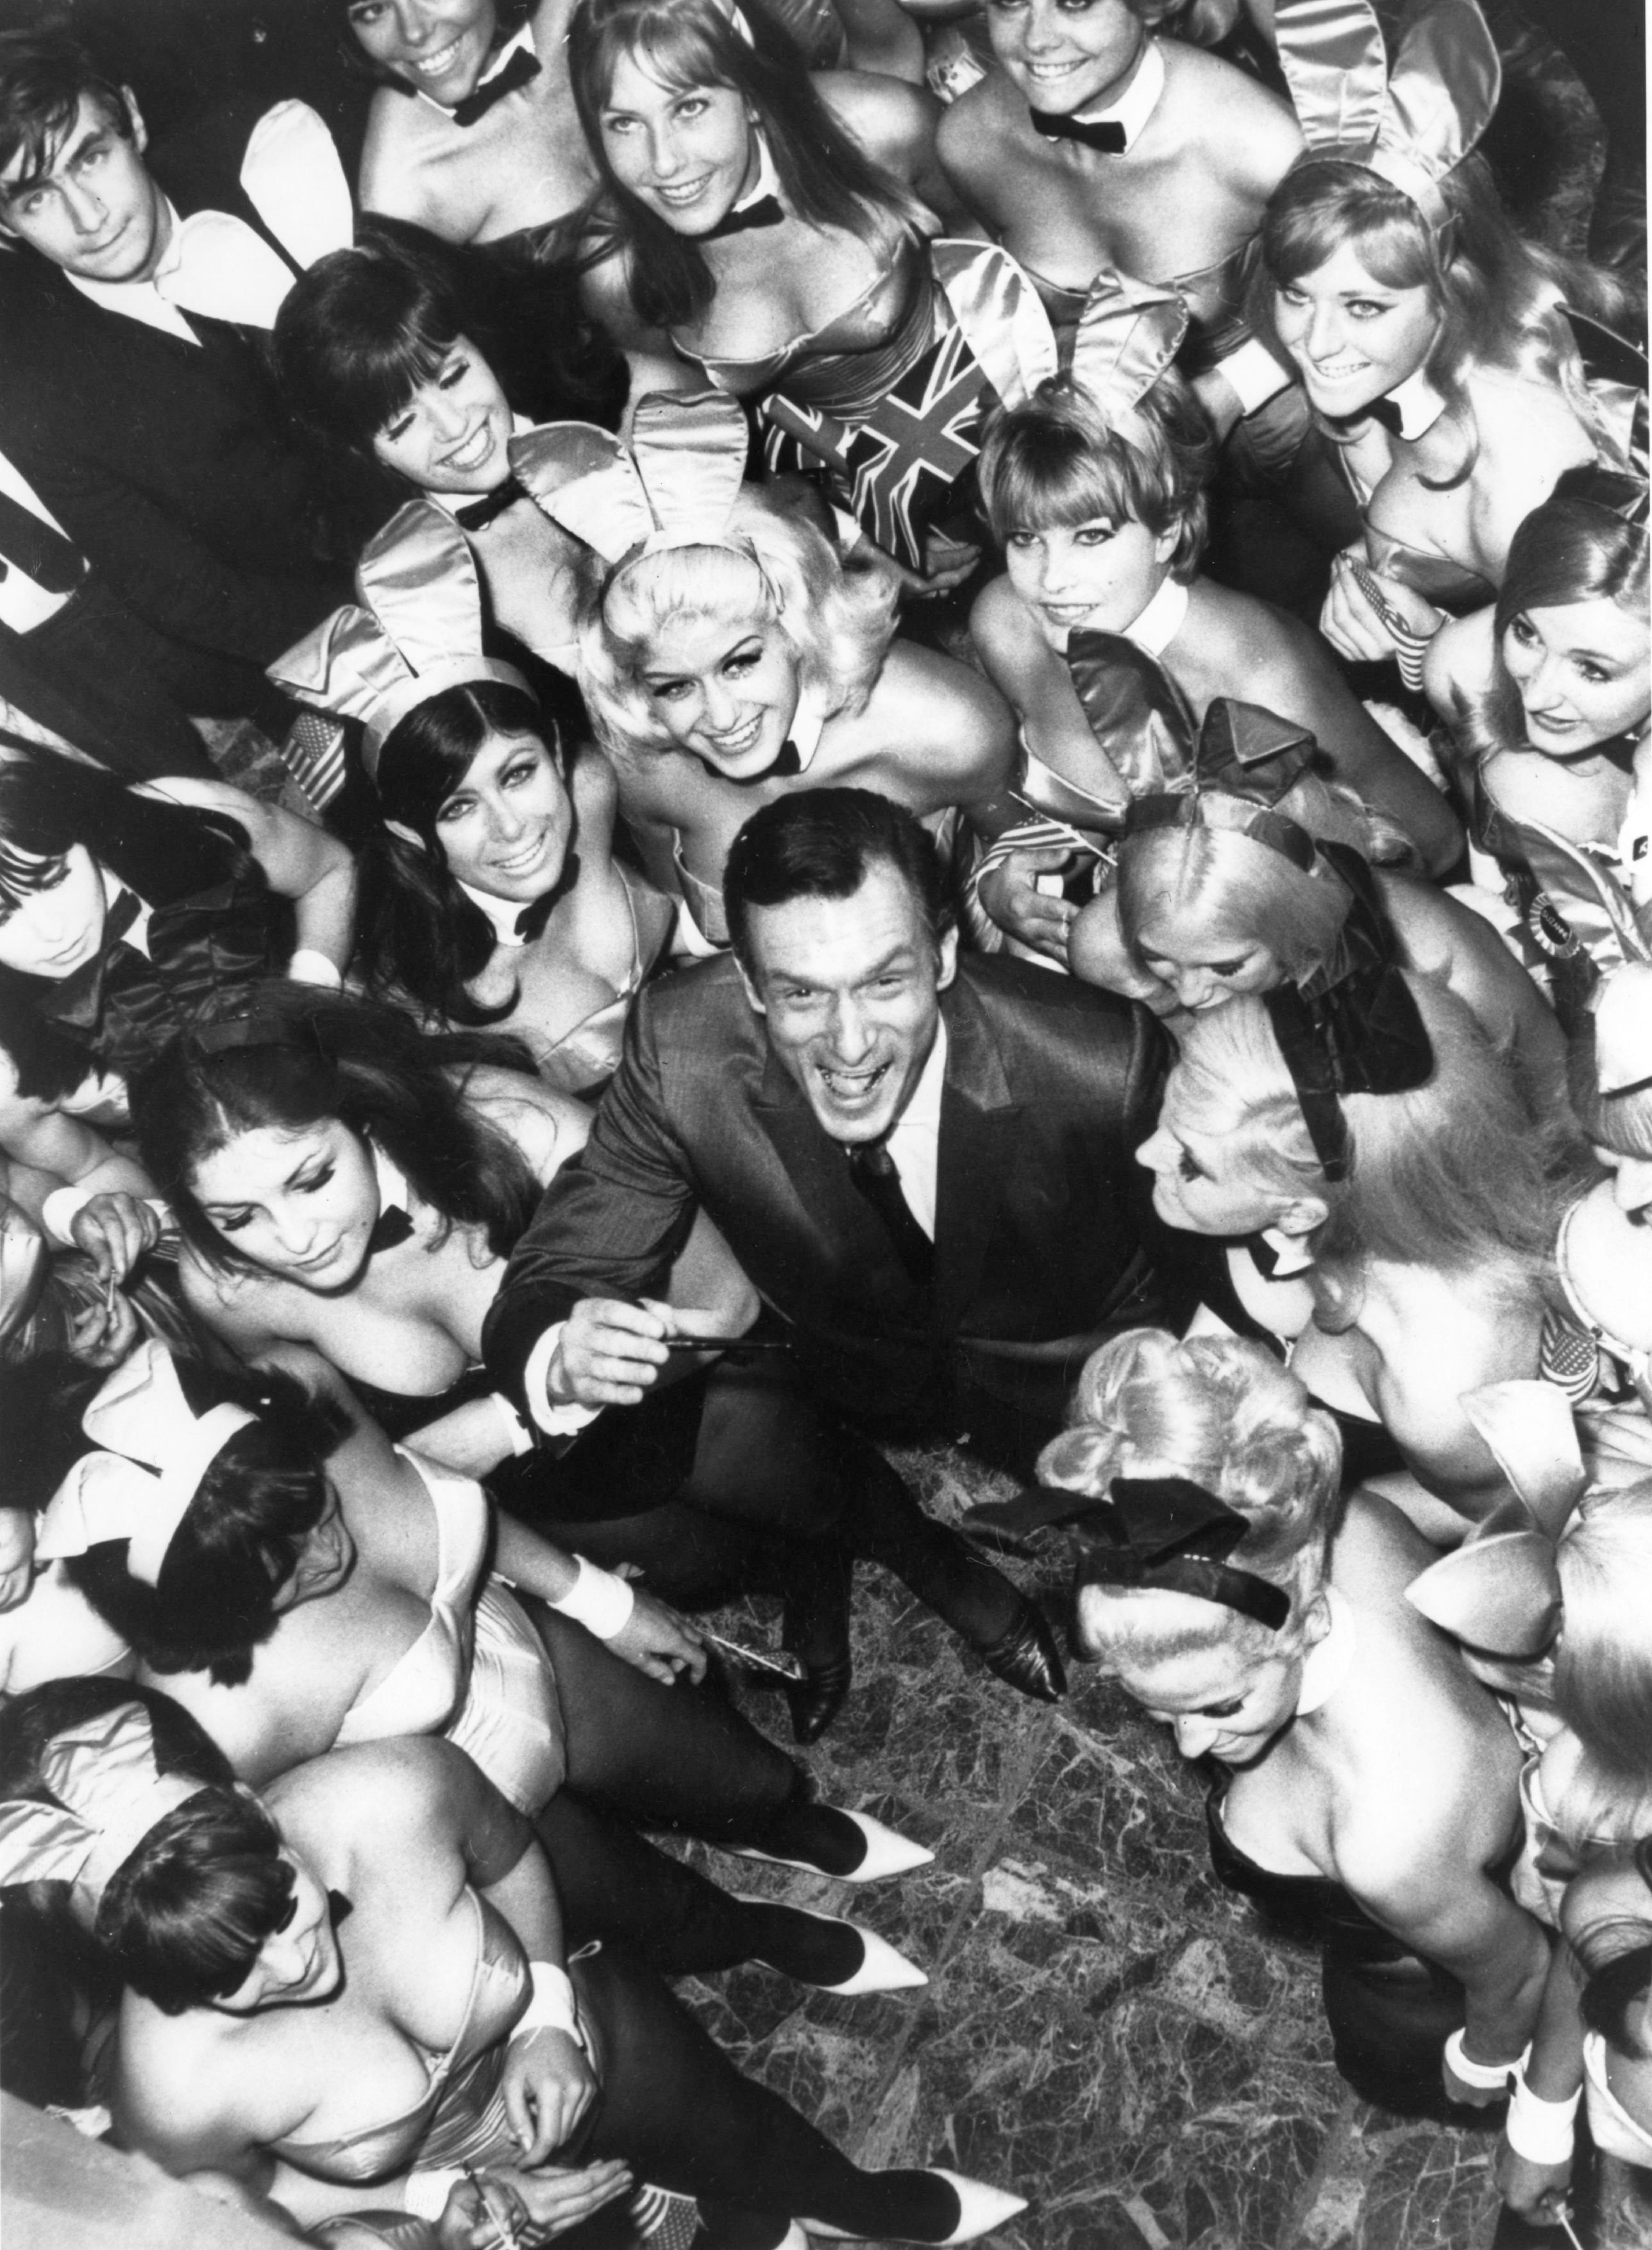 The Contradictory Feminist Legacy Of Playboy's Hugh